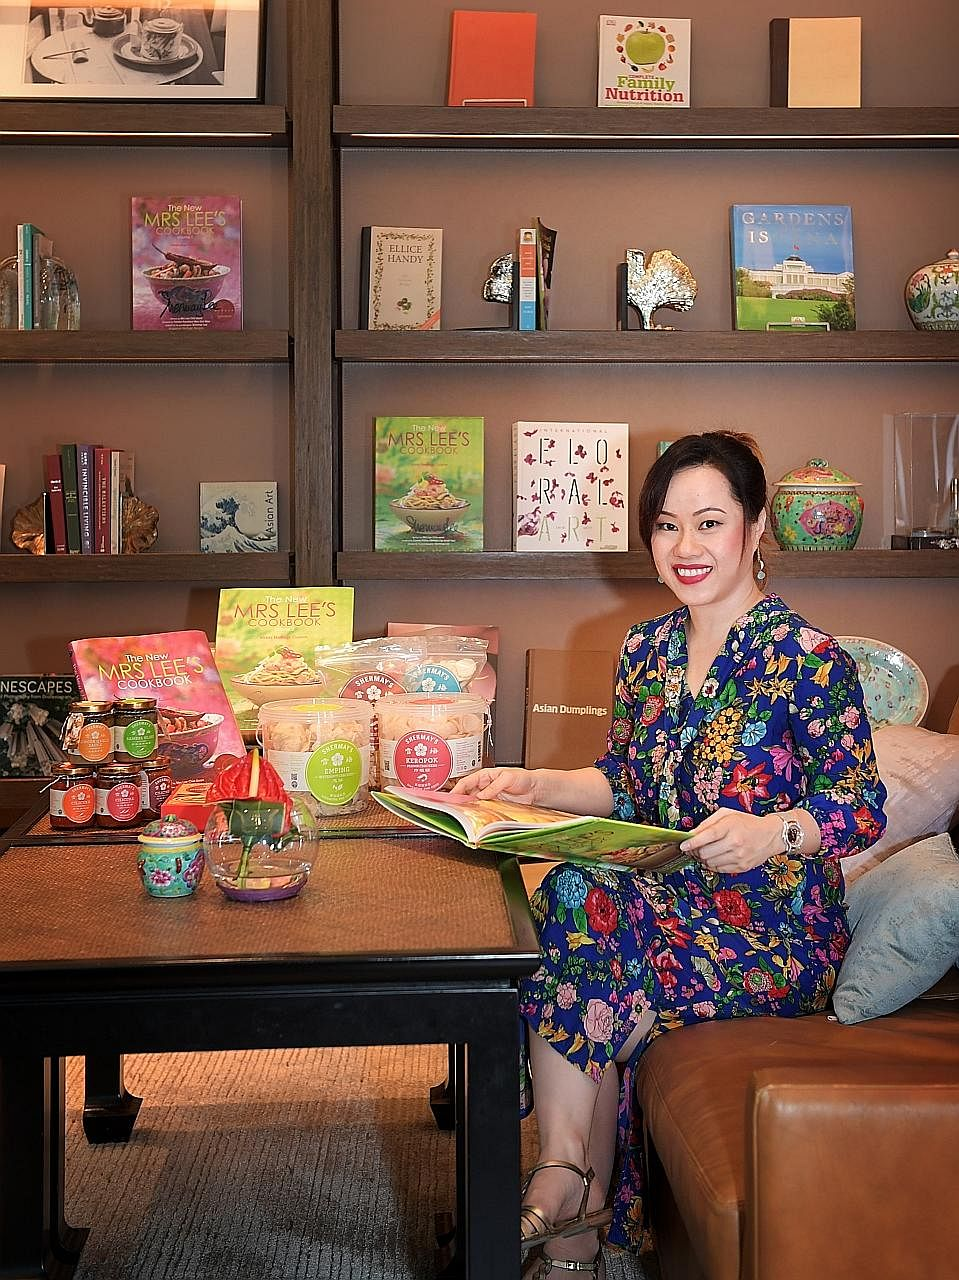 Ms Lee's grandmother, Mrs Lee Chin Koon (right), was a doyenne of Peranakan cooking and author of an iconic cookbook. Ms Shermay Lee, founder of Shermay's Singapore Fine Food, has parlayed her Peranakan cooking skills and heritage recipes like those